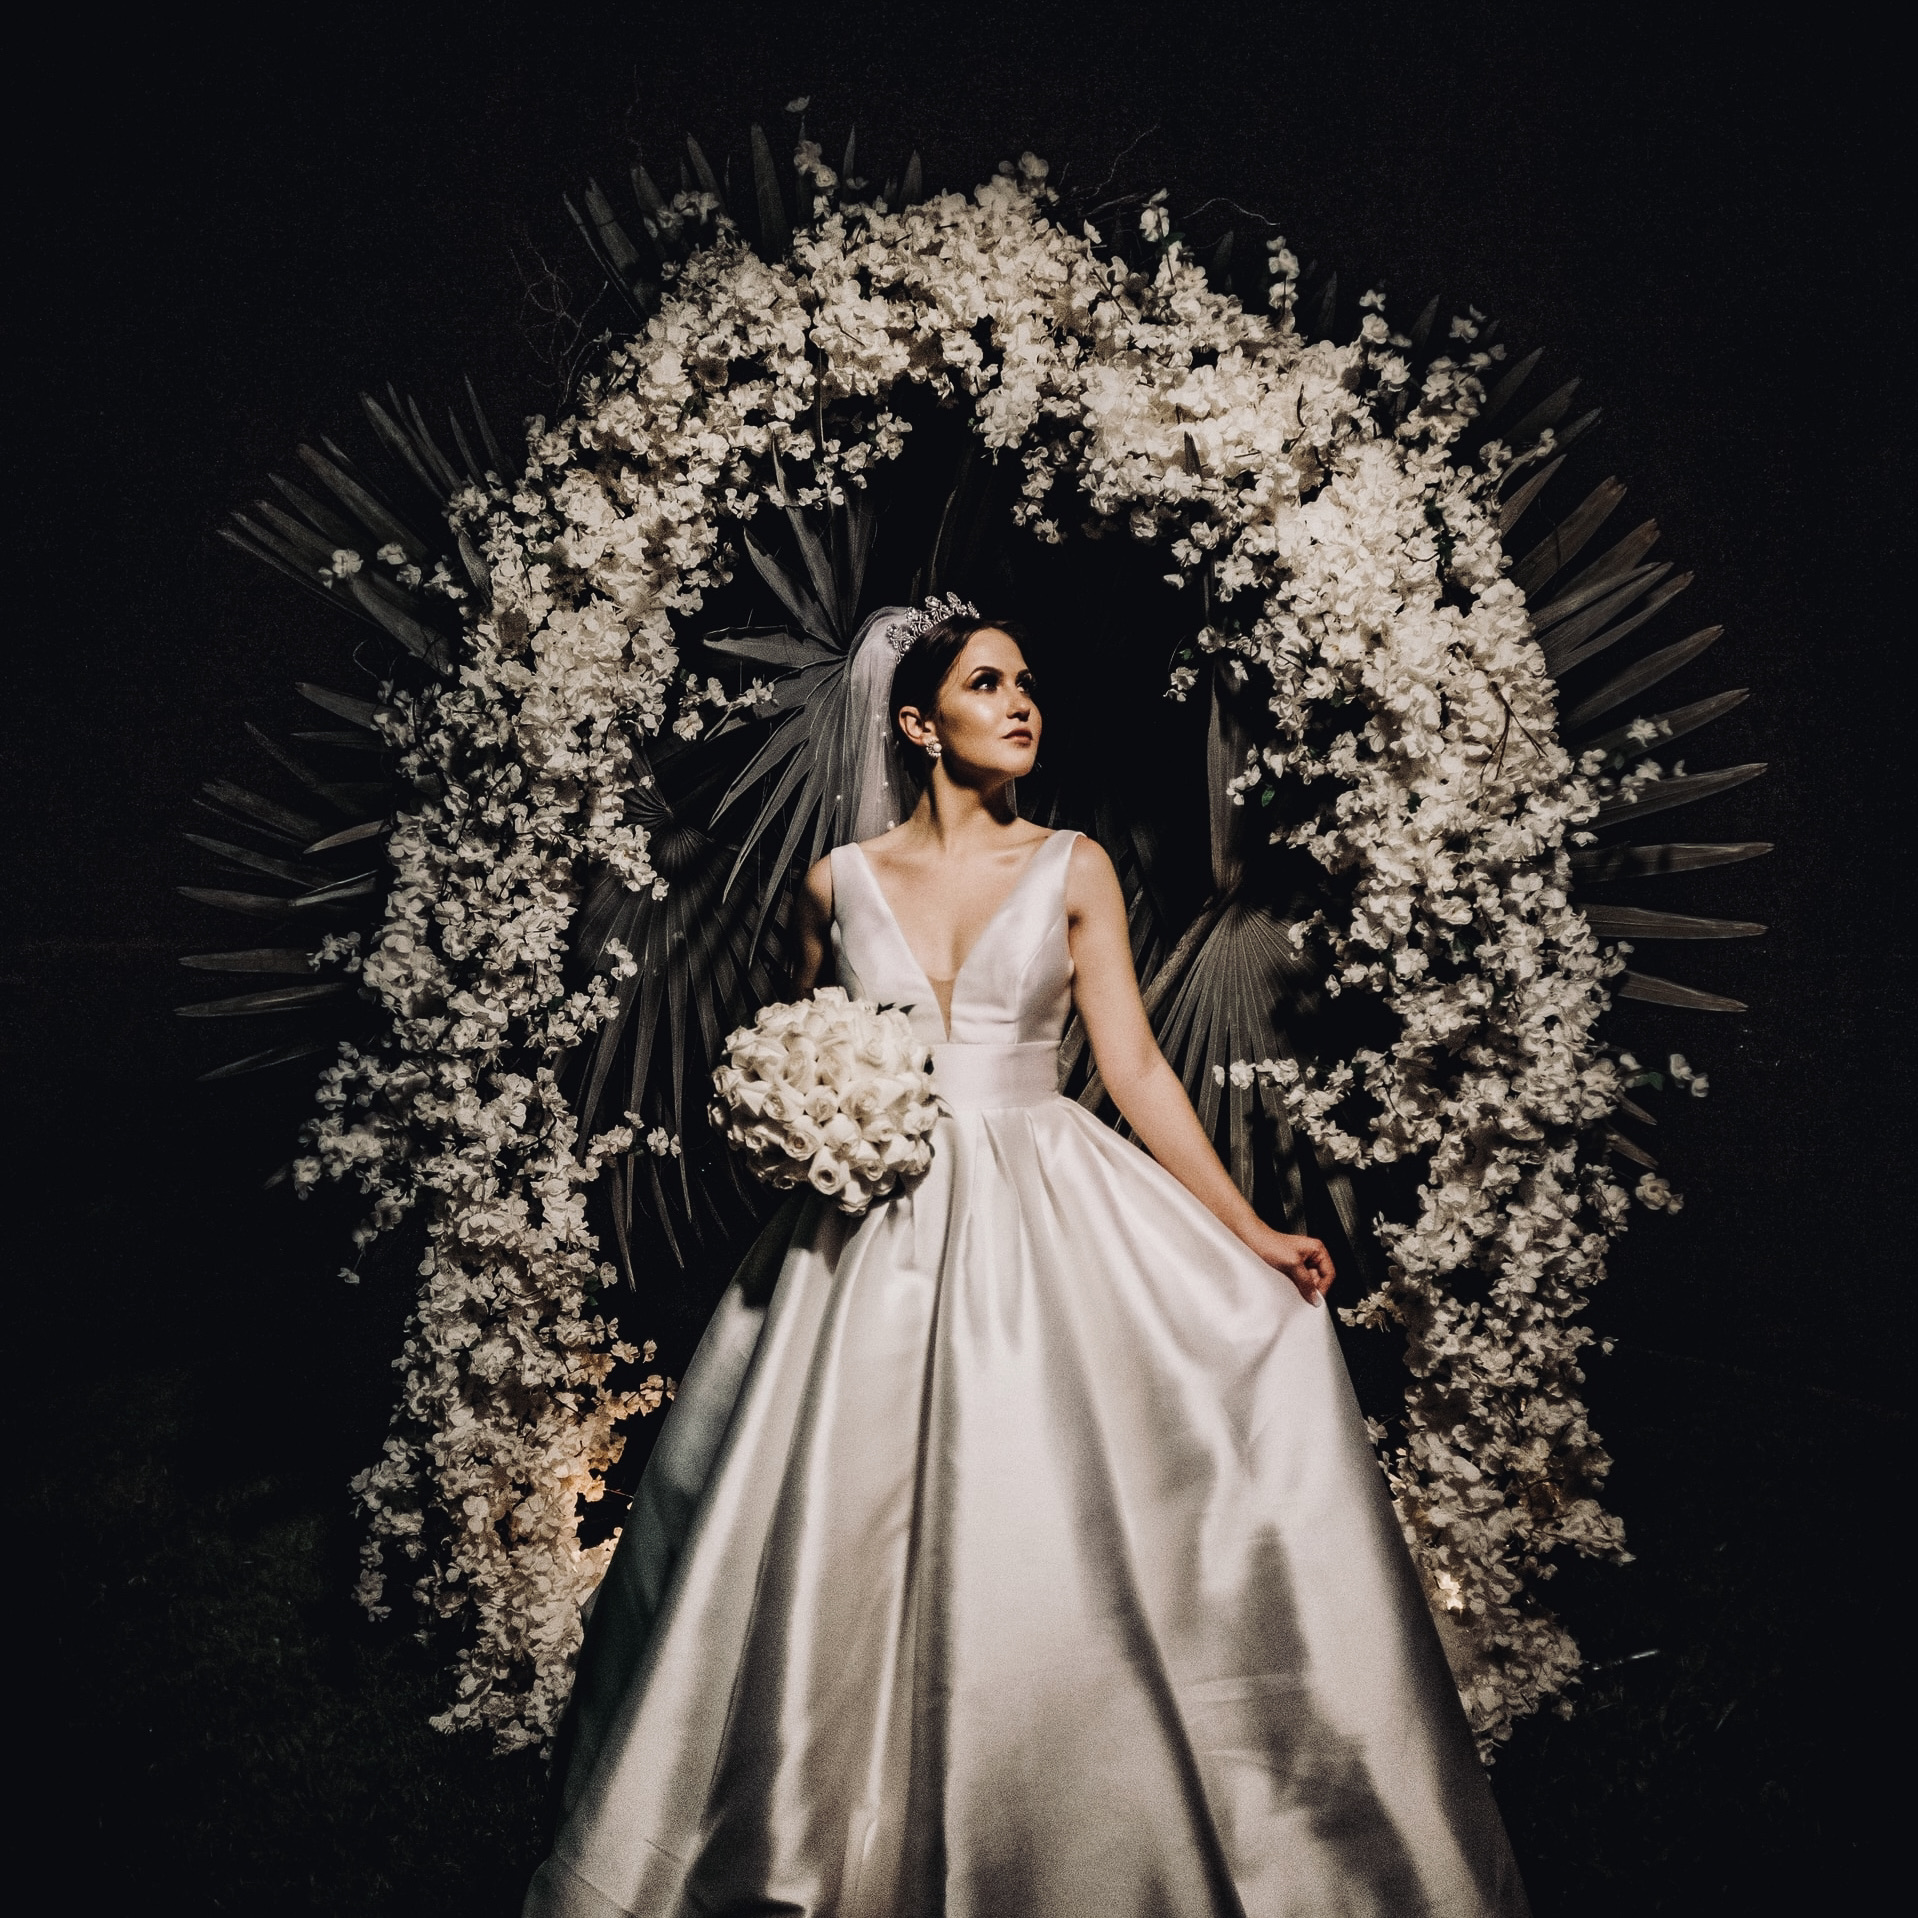 THE GLAM-SPARKLING BRIDE